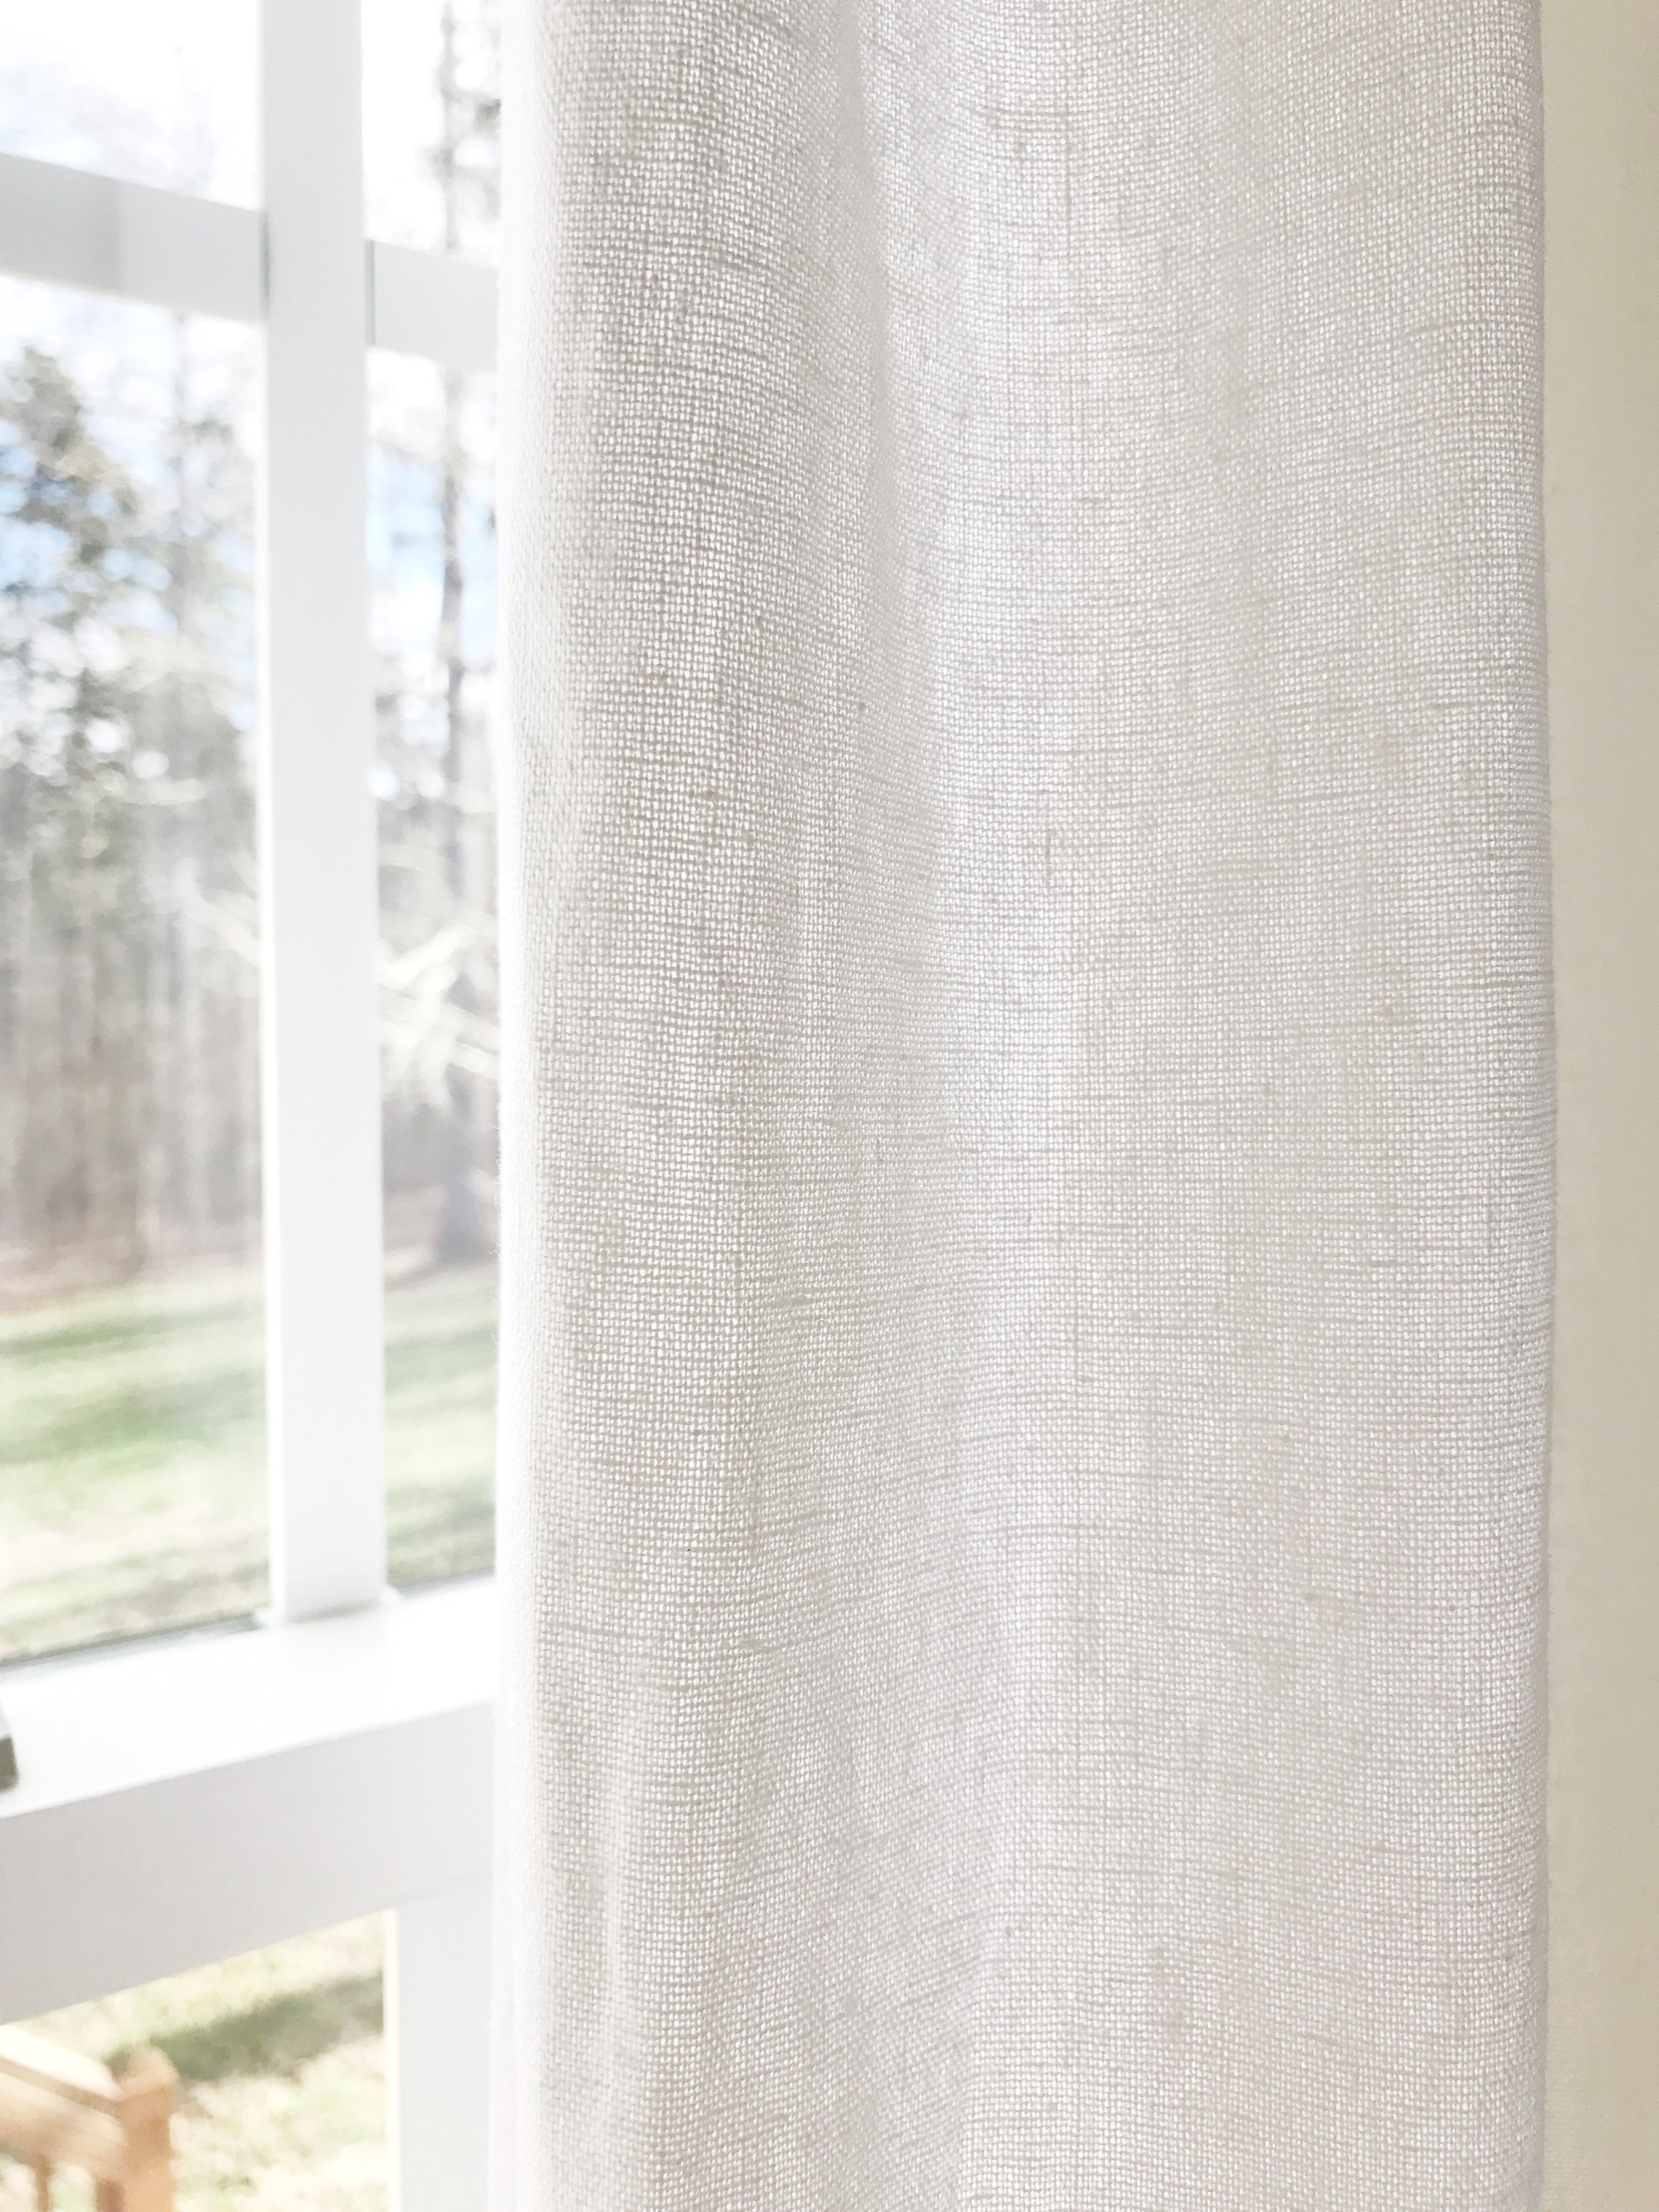 Home Tour- Farmhouse Style Breakfast Nook With French Linen Curtains by Plum Pretty Decor and Design